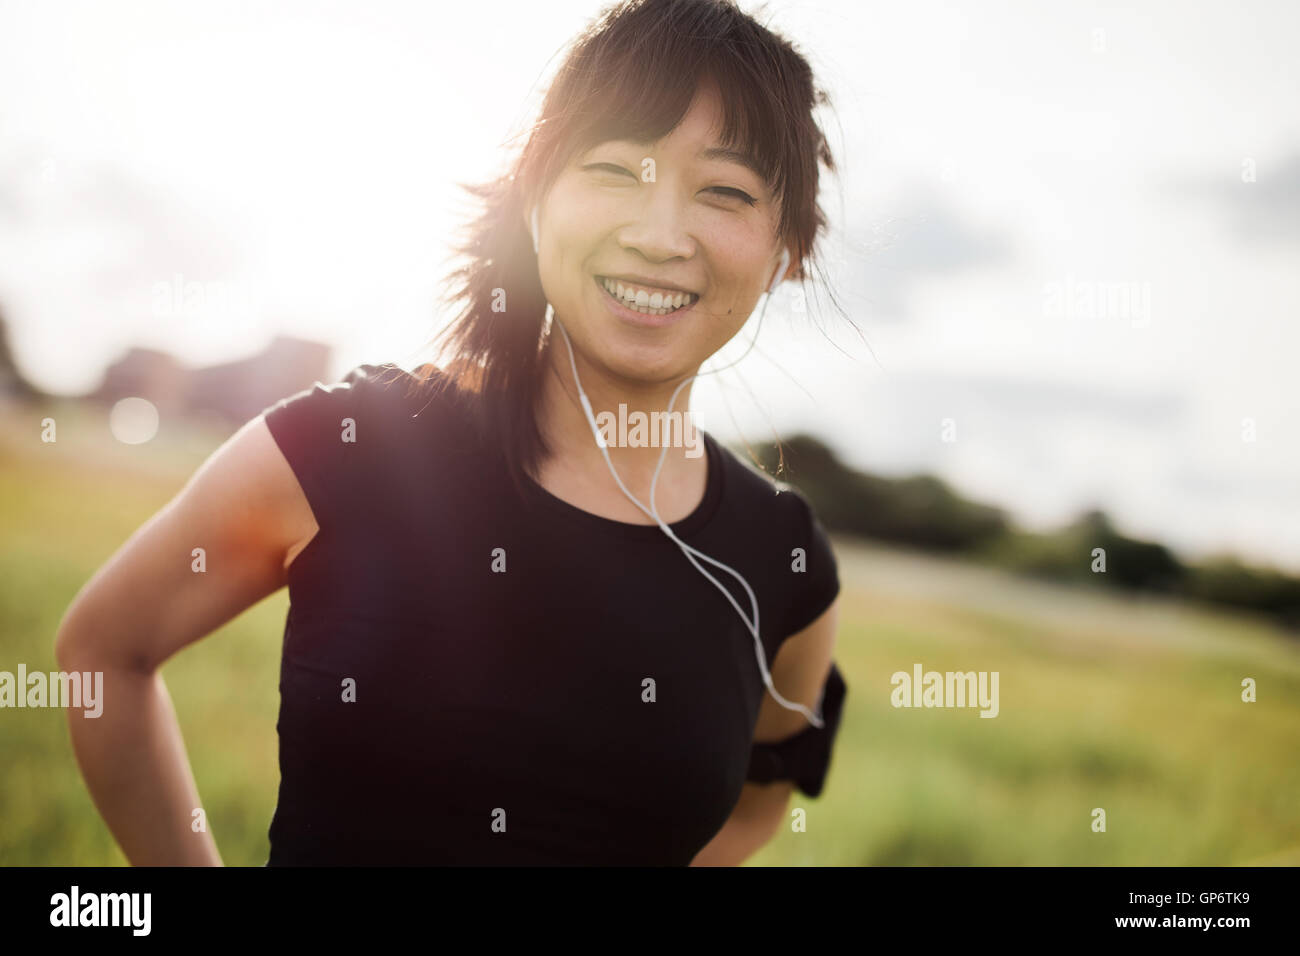 Portrait of young woman standing outdoors course and smiling at camera. Modèle féminin chinois dans les Photo Stock